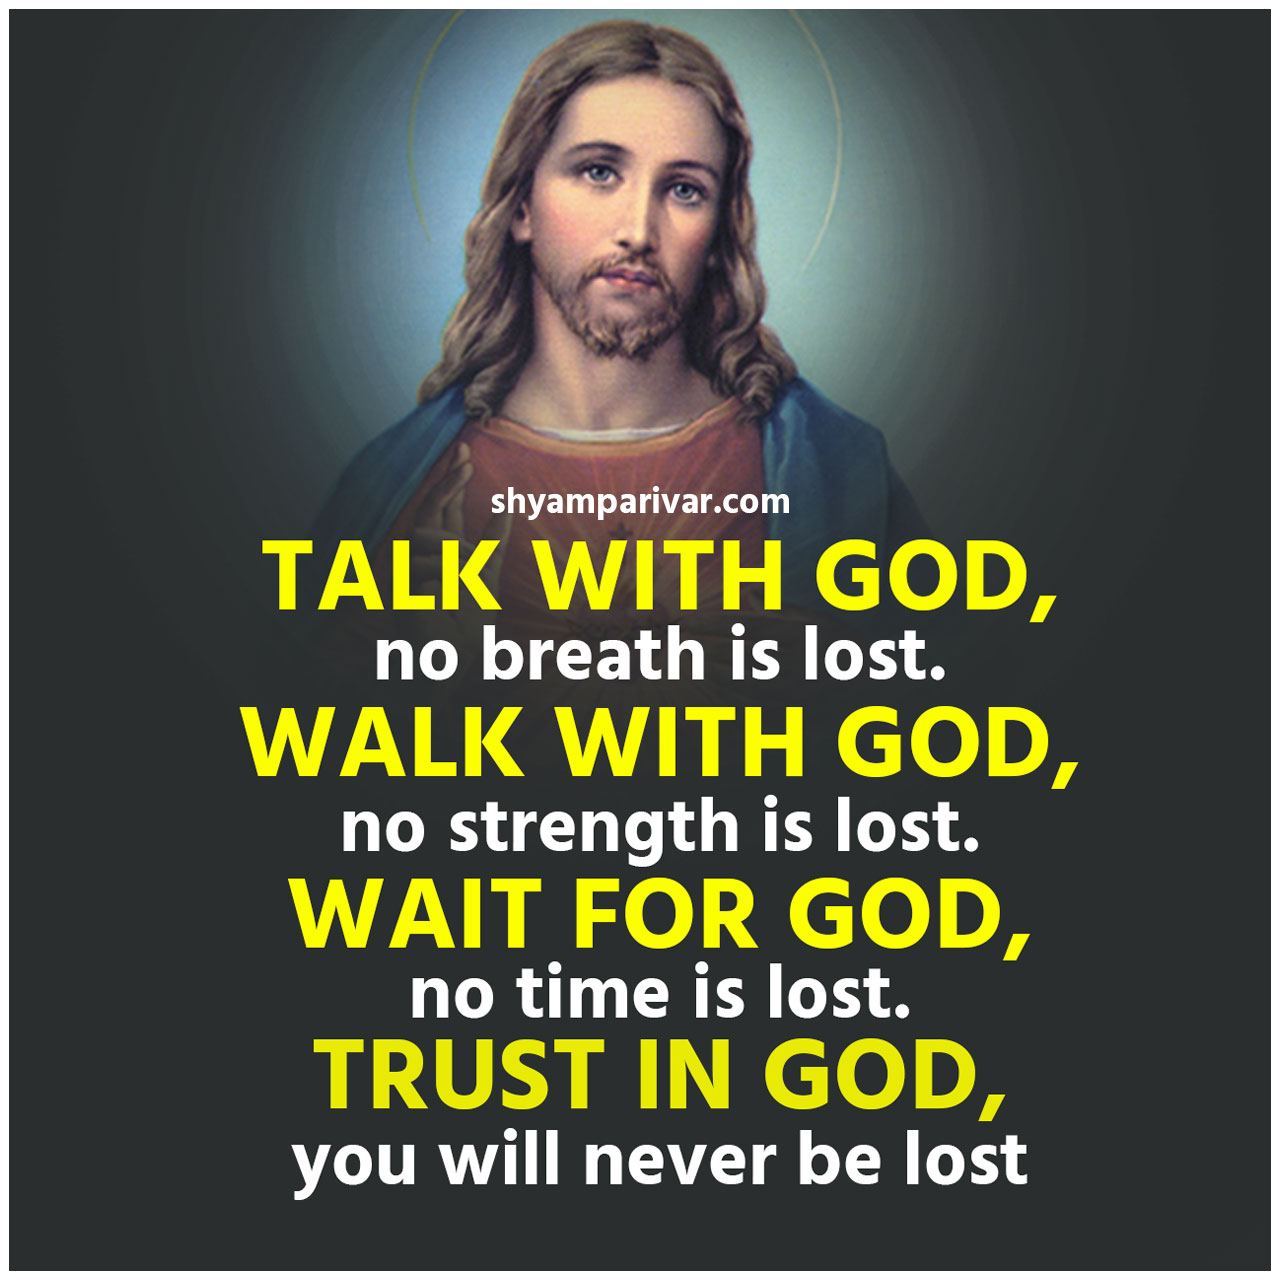 Trust in god quote image